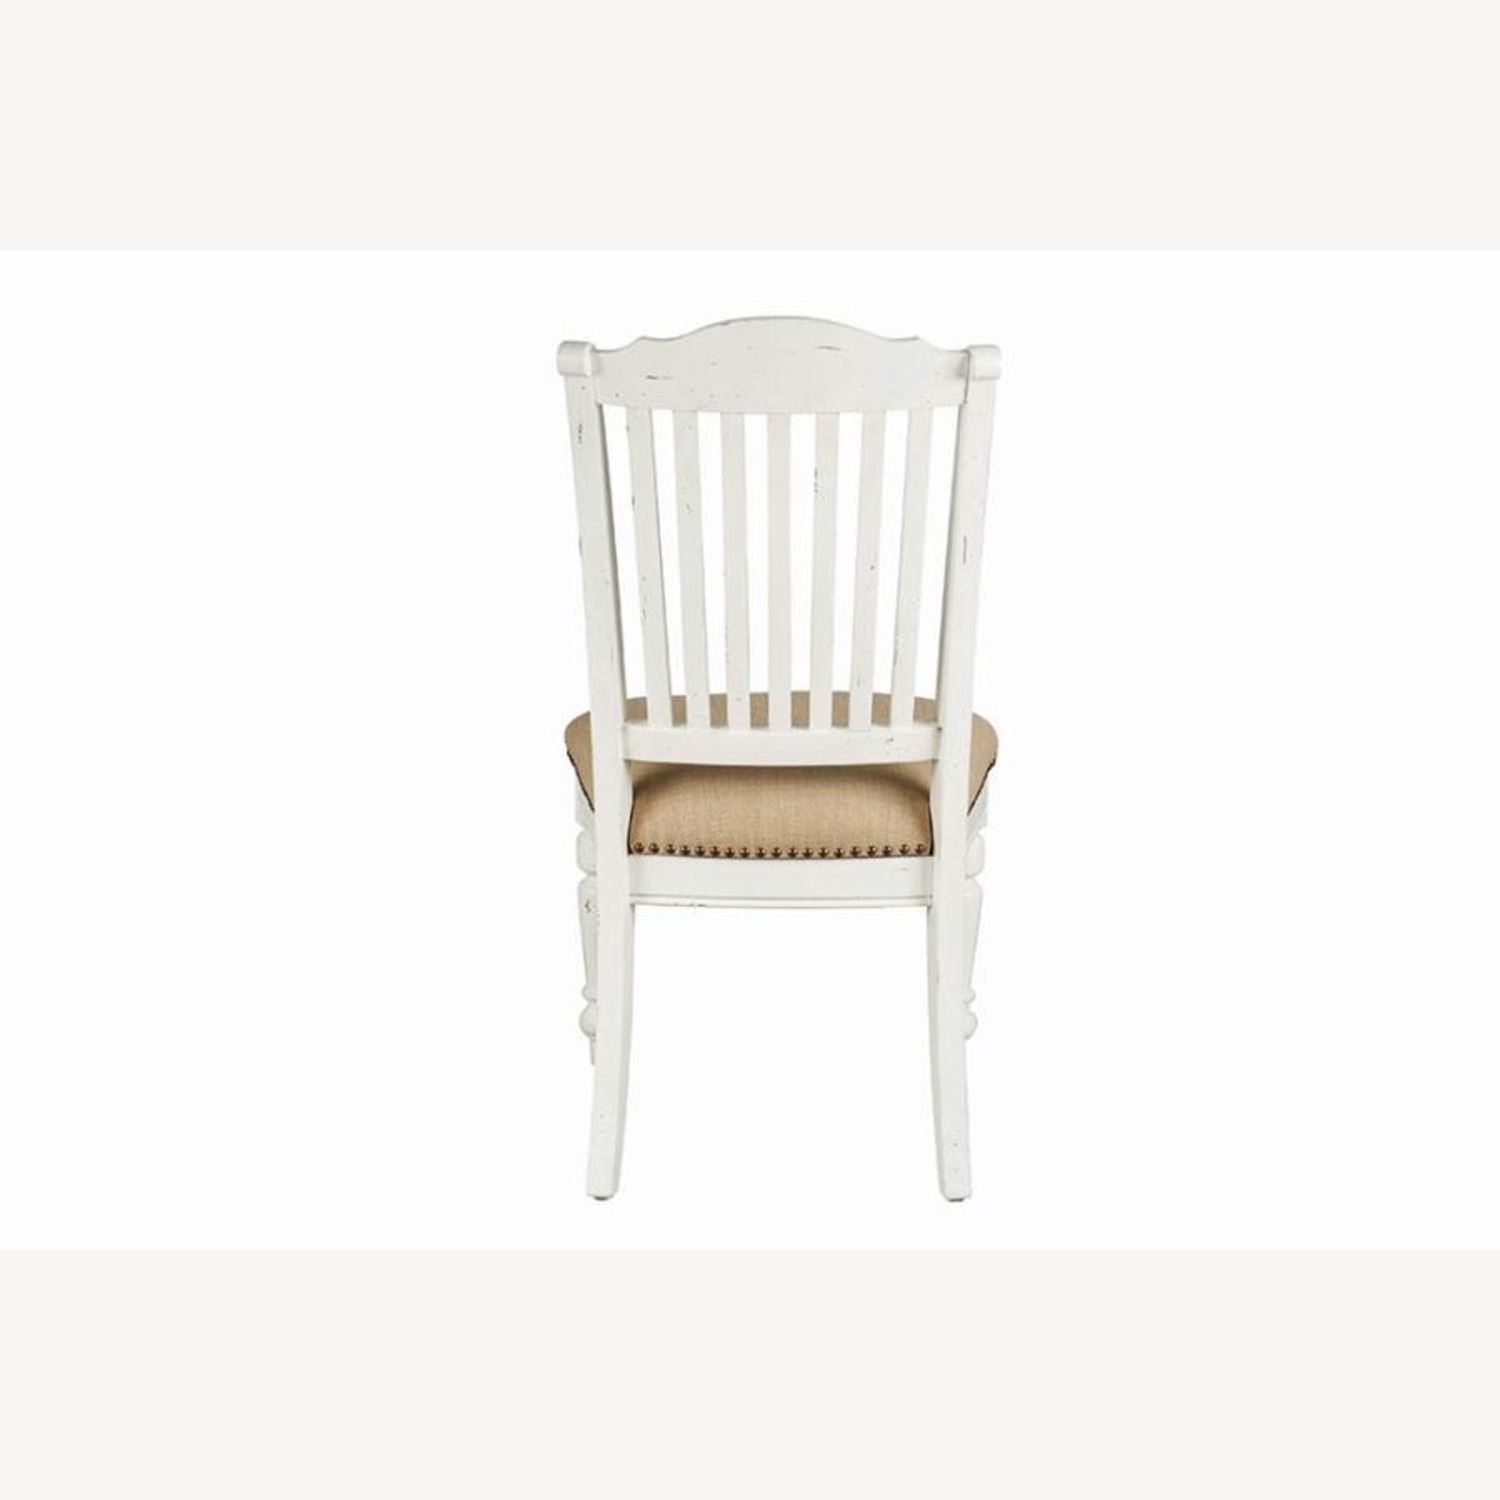 Rustic Farmhouse Style Side Chair In White Finish - image-2